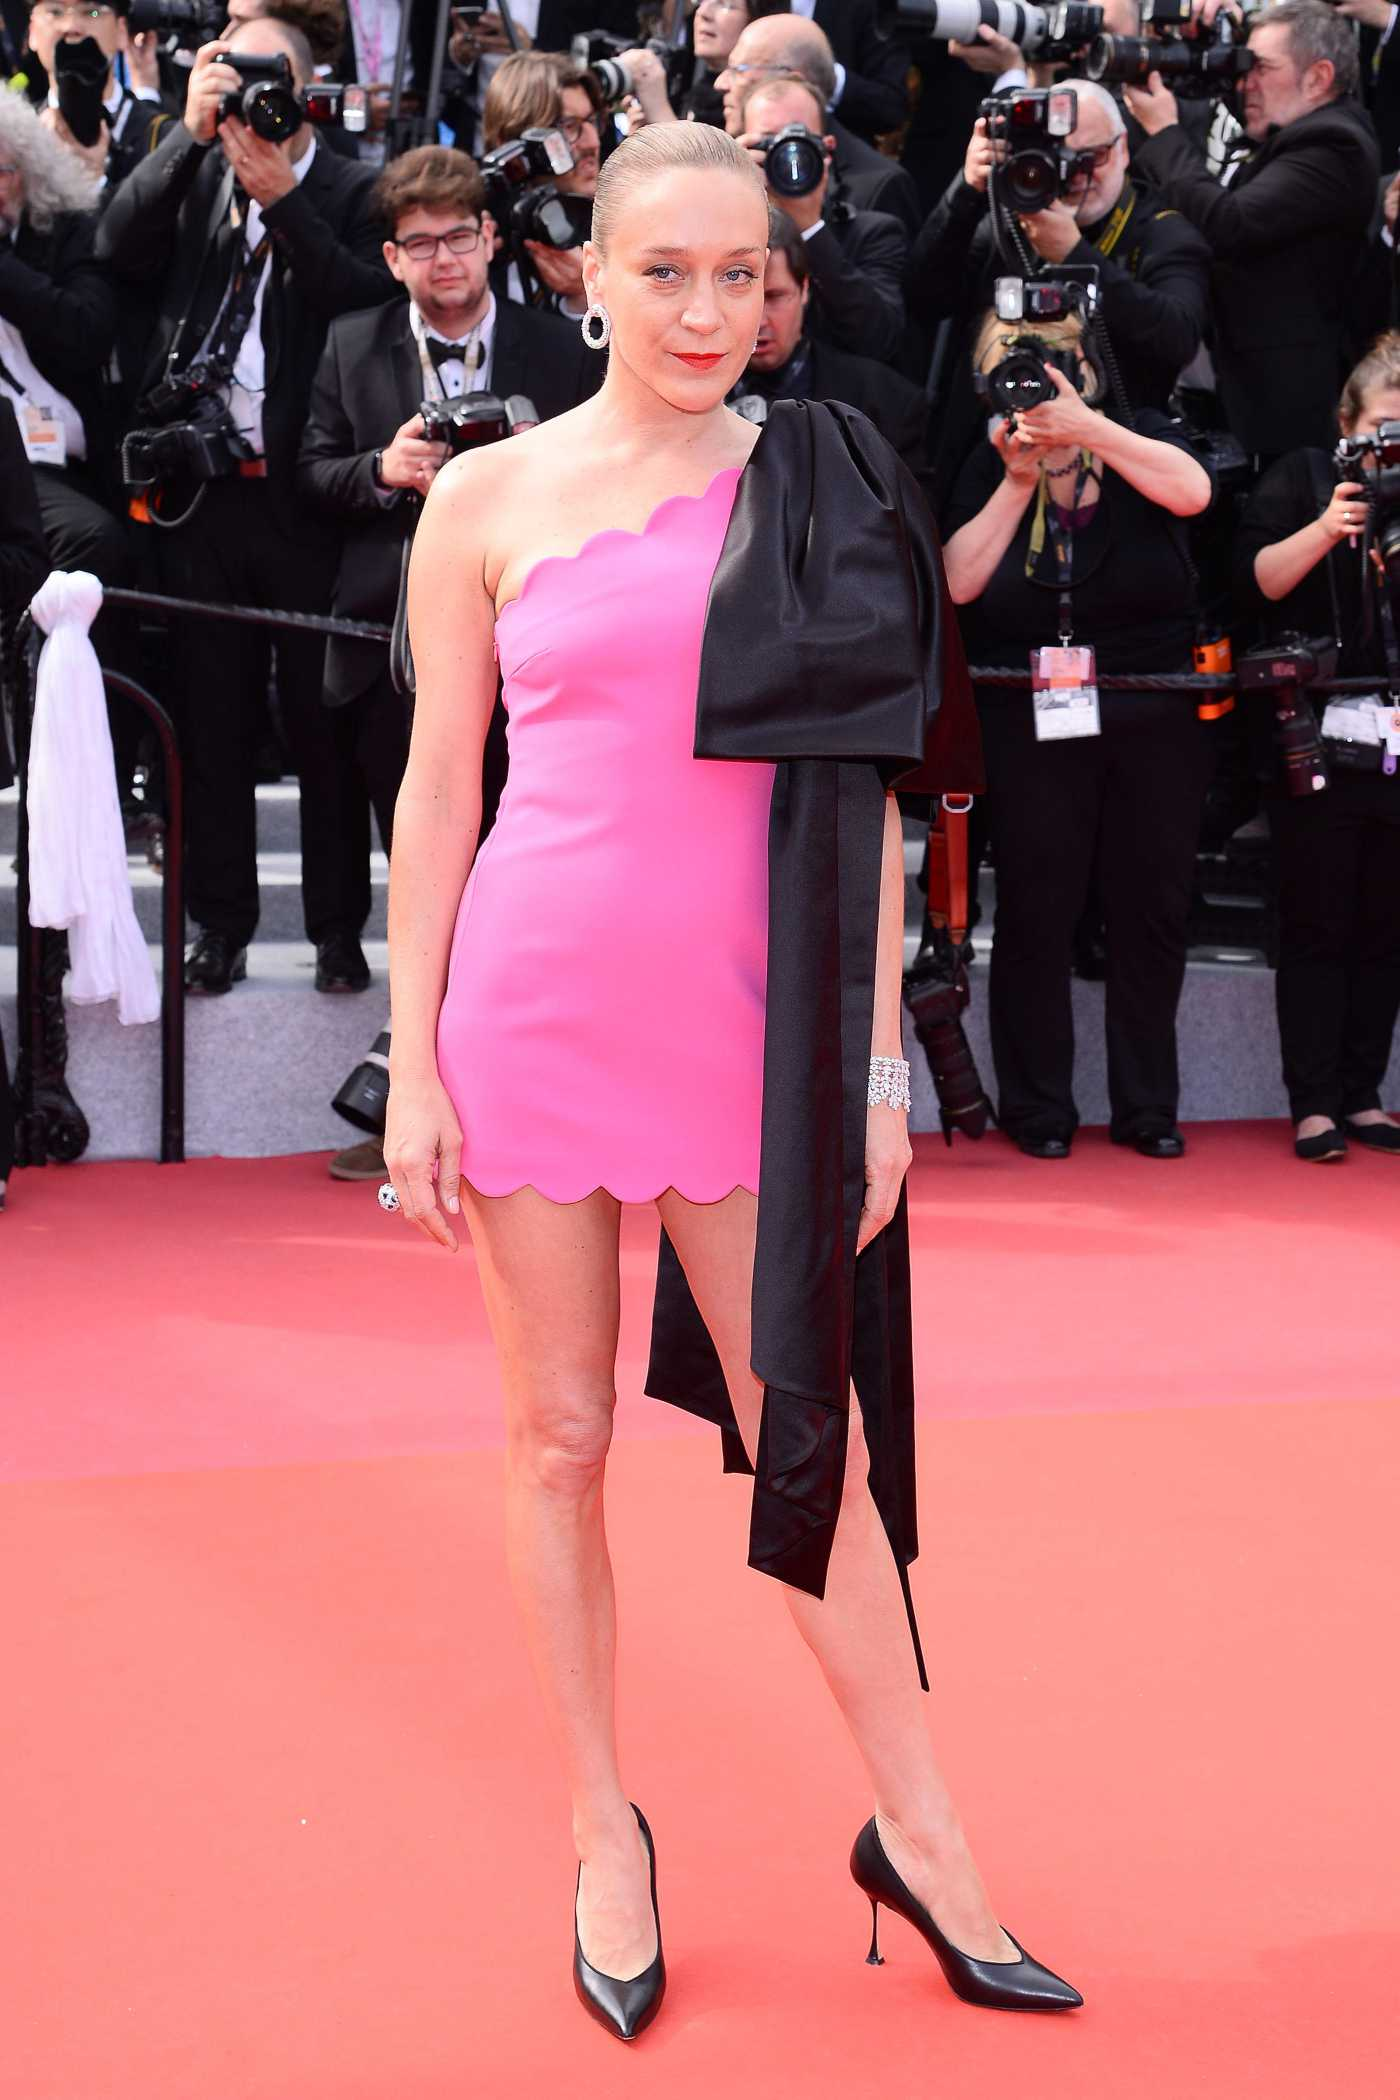 Chloe Sevigny Attends the Once Upon a Time in Hollywood  Screening During the 72nd Annual Cannes Film Festival in Cannes 05/21/2019